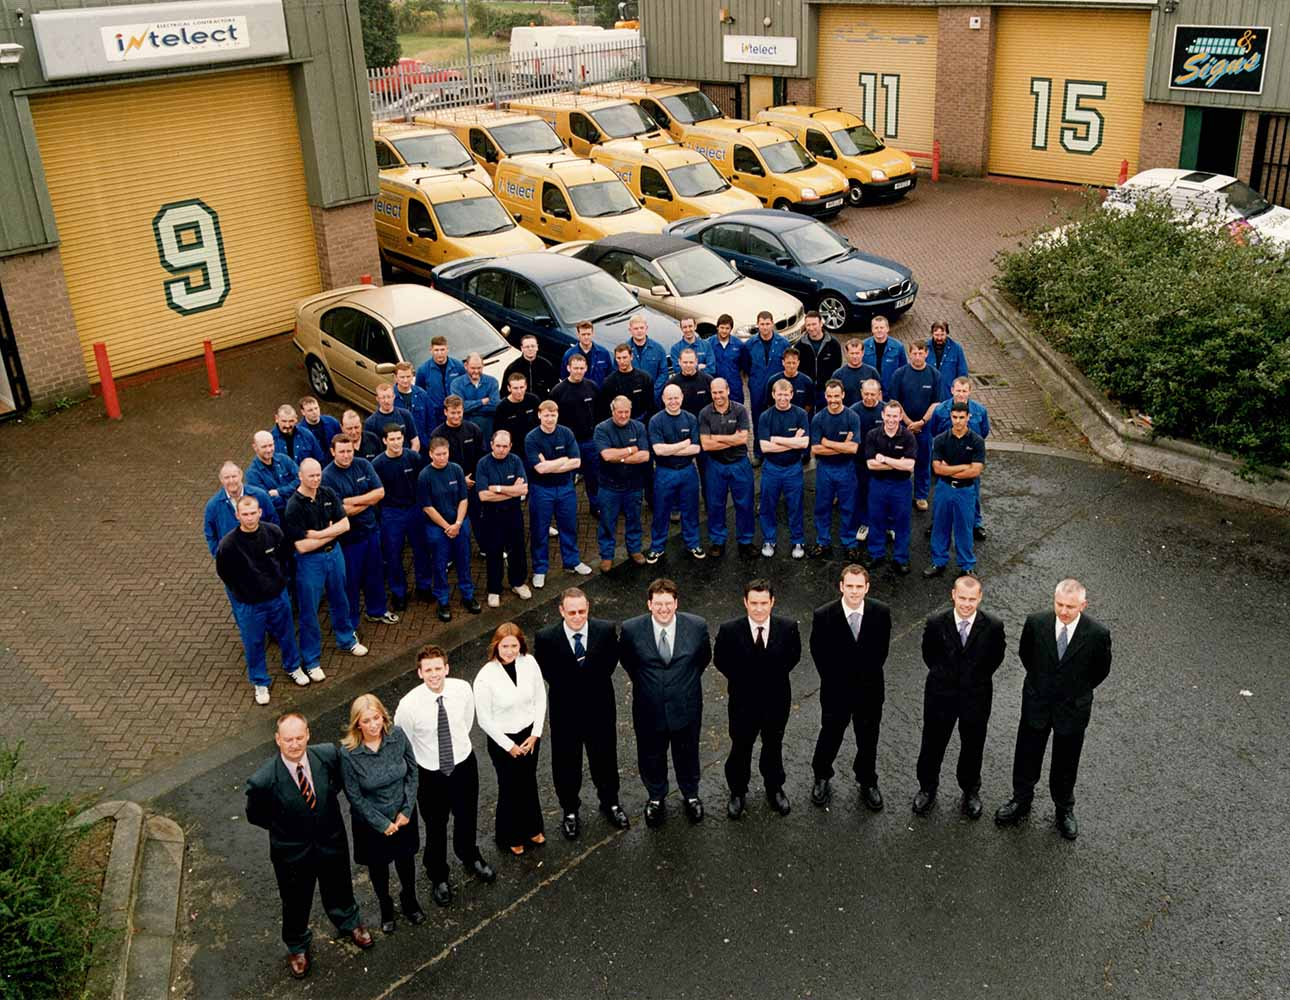 2002 Intelect moved to their new premises at Whorlton Road, Riverside Park Middlesbrough.